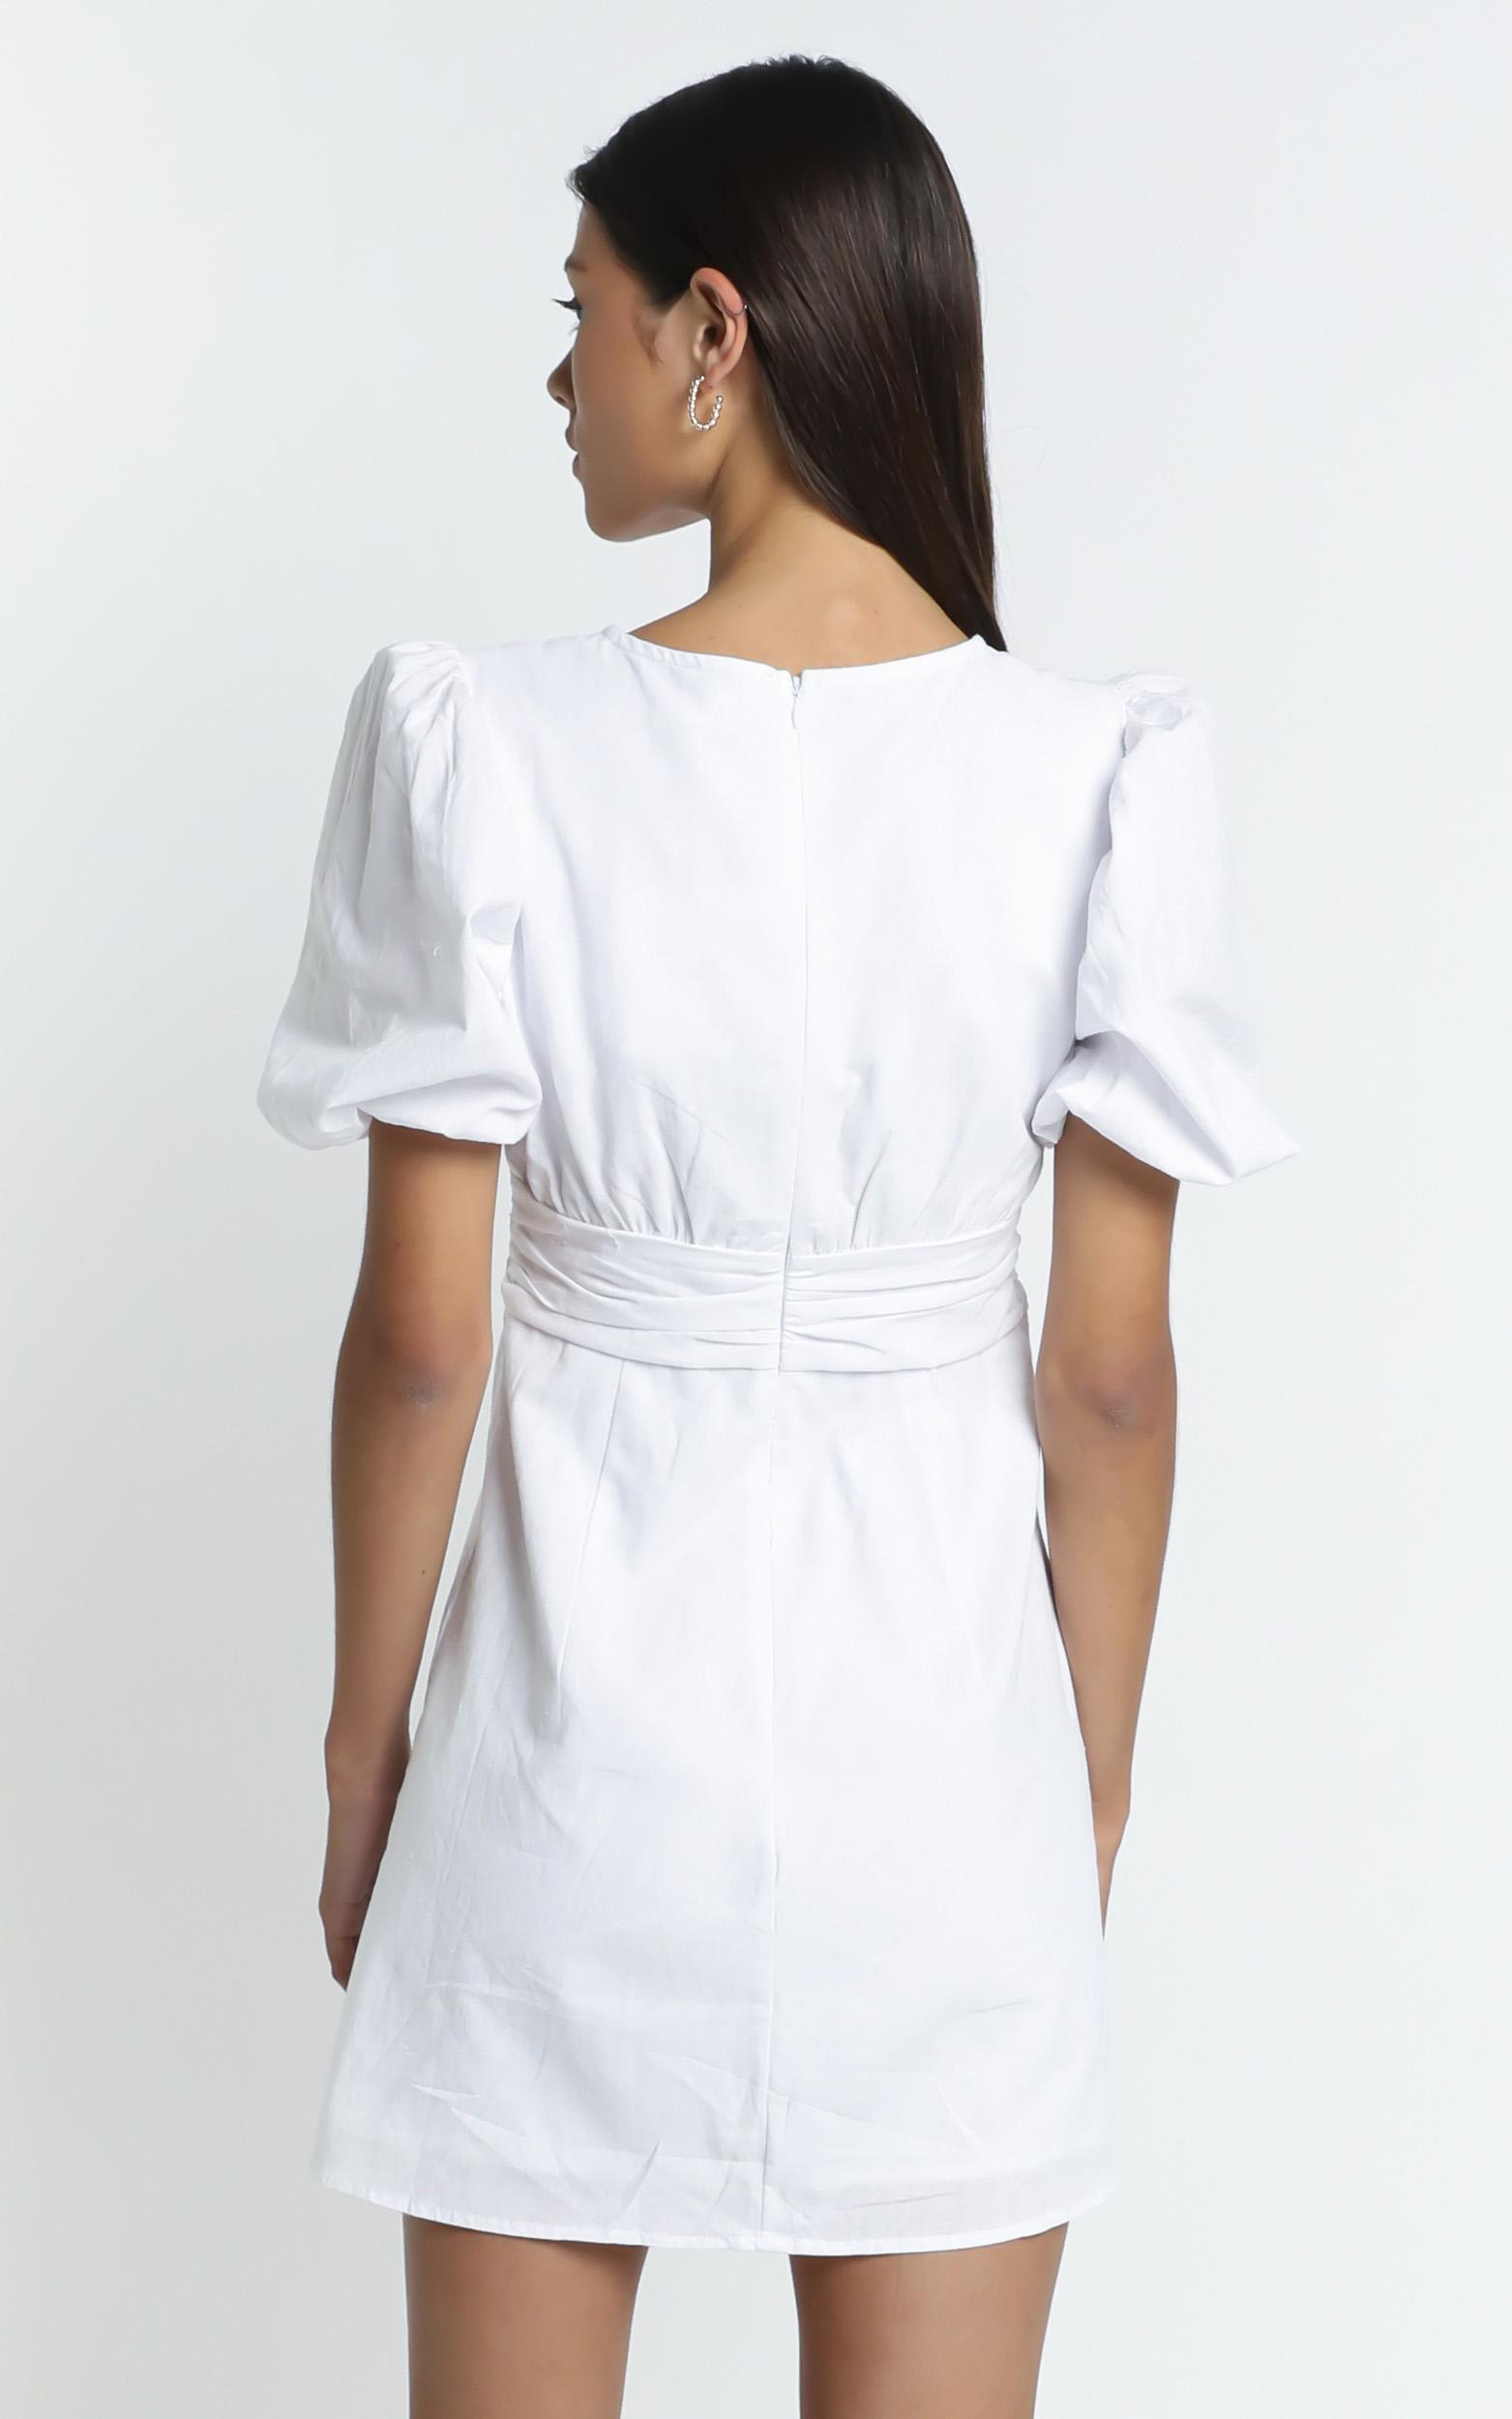 Sunray Dress in White - 6 (XS), White, hi-res image number null